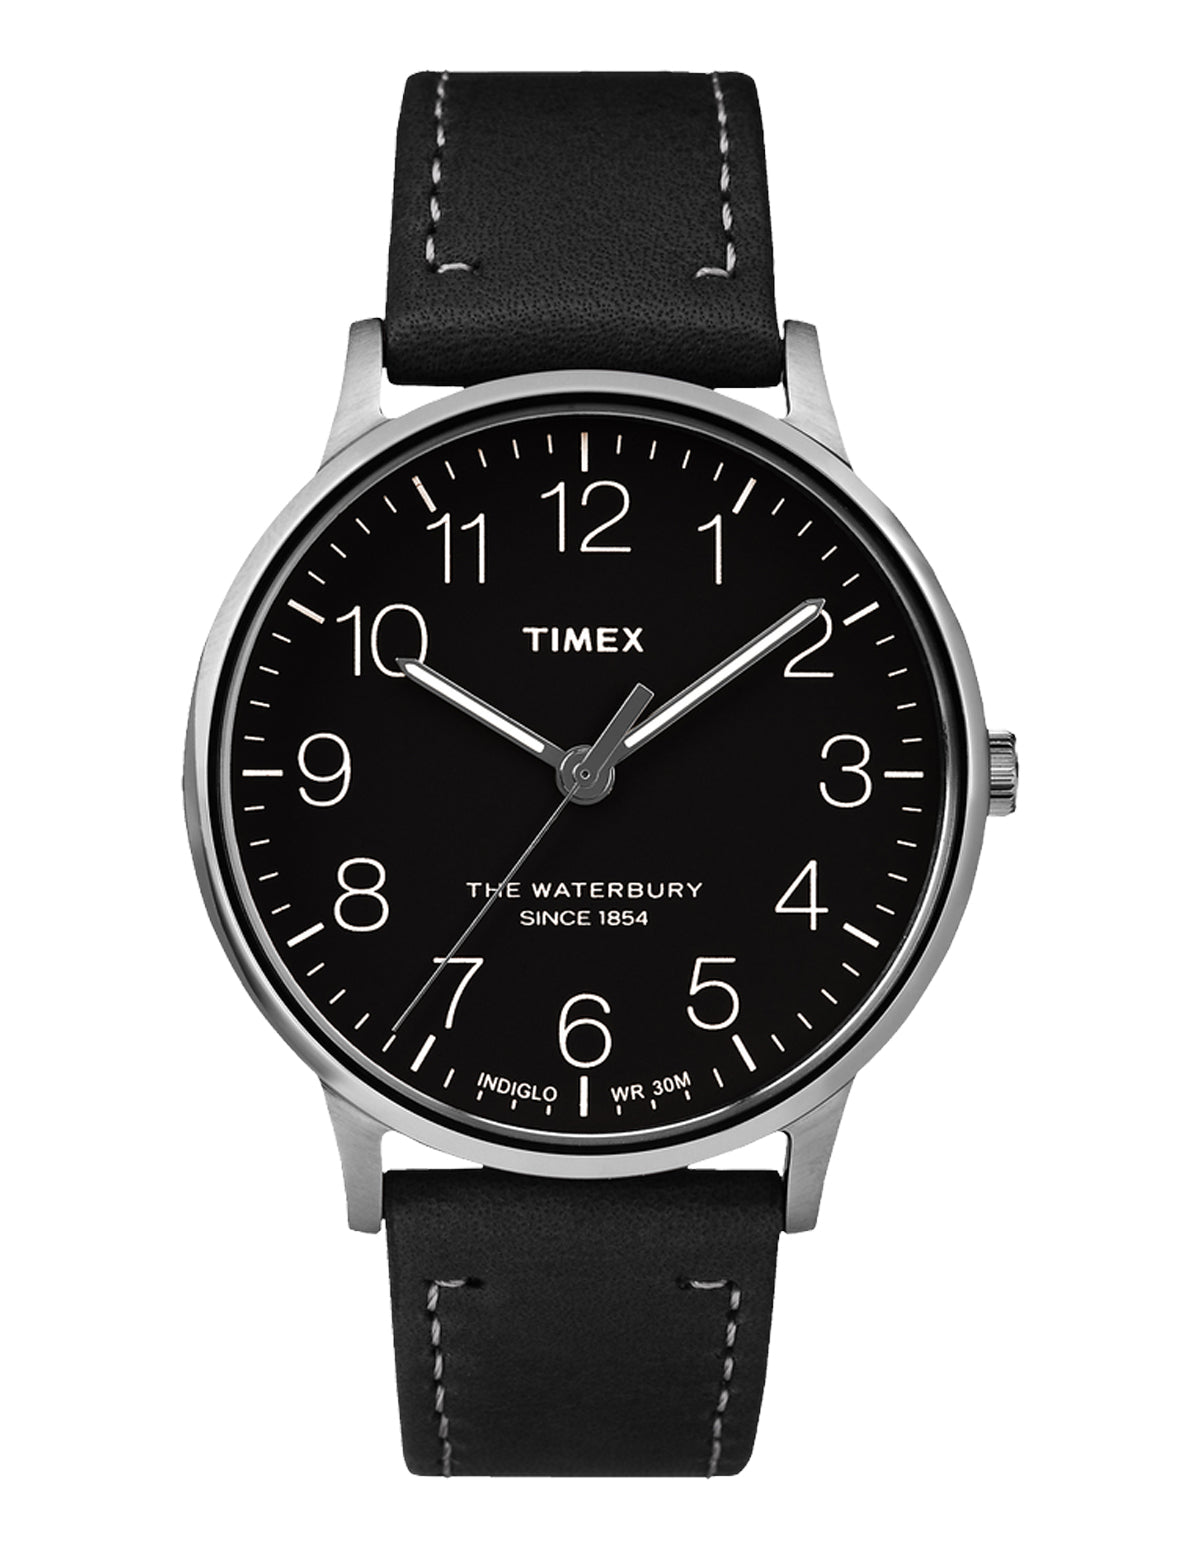 Timex Waterbury Heritage Watch Chrome Black Black